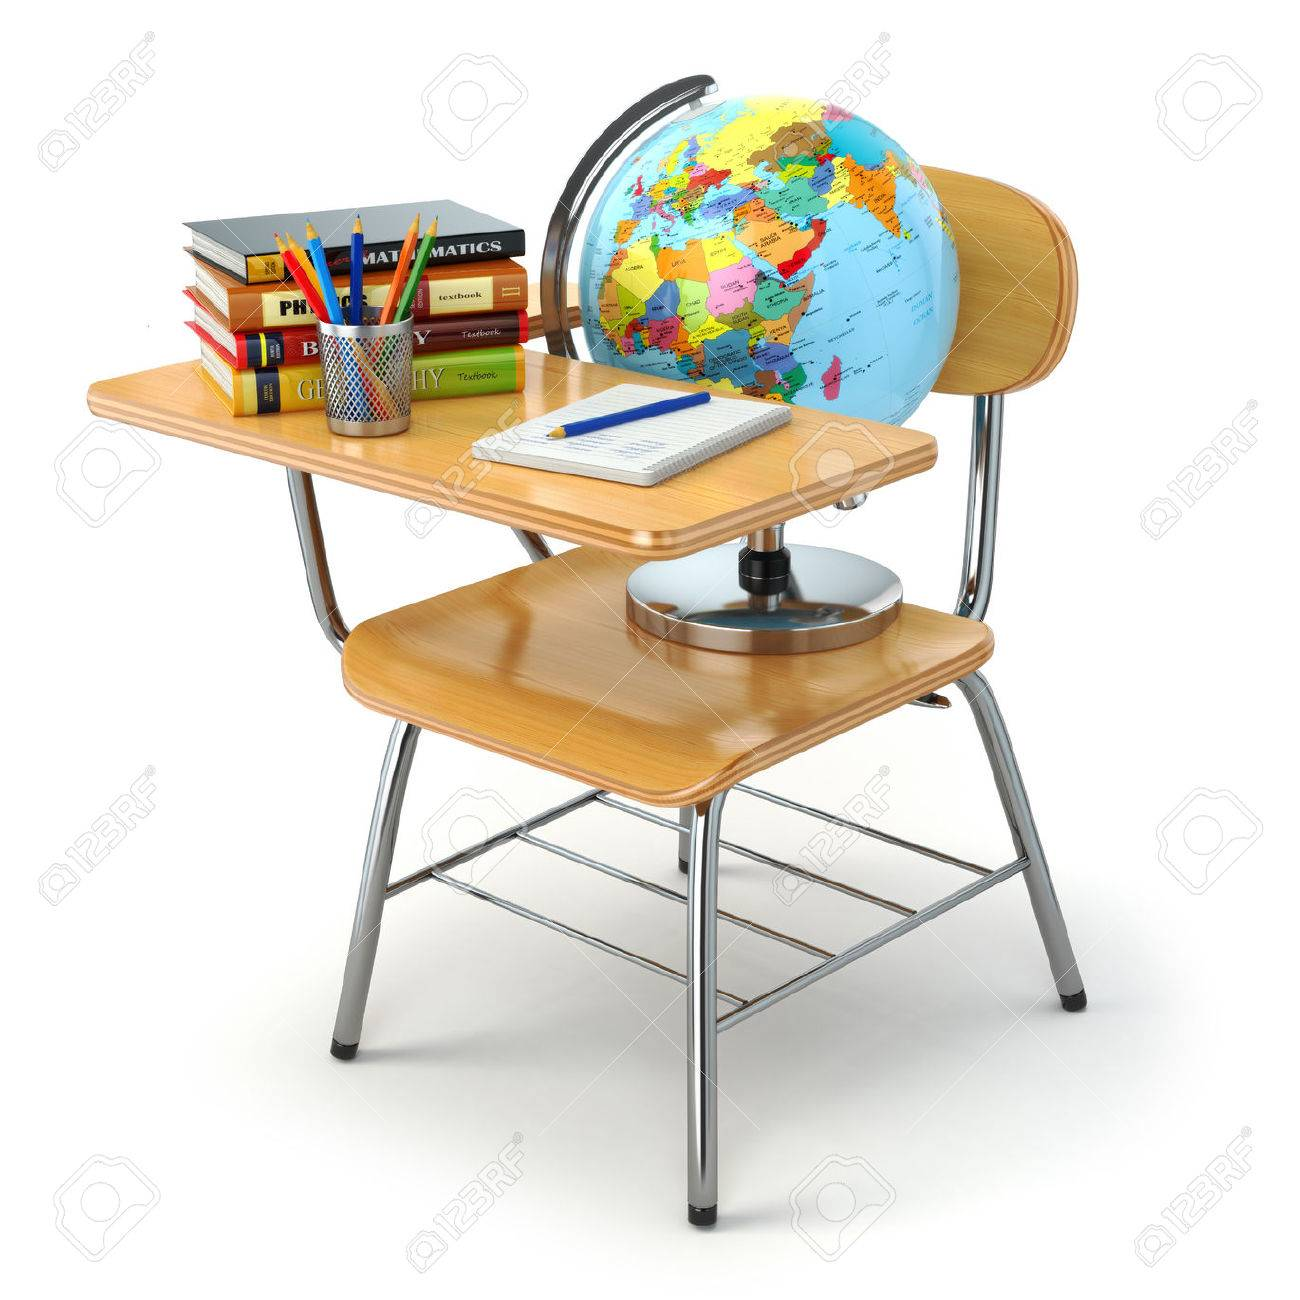 Incredible Wooden School Desk And Chair With Books Pencils And Globe Isolated Inzonedesignstudio Interior Chair Design Inzonedesignstudiocom